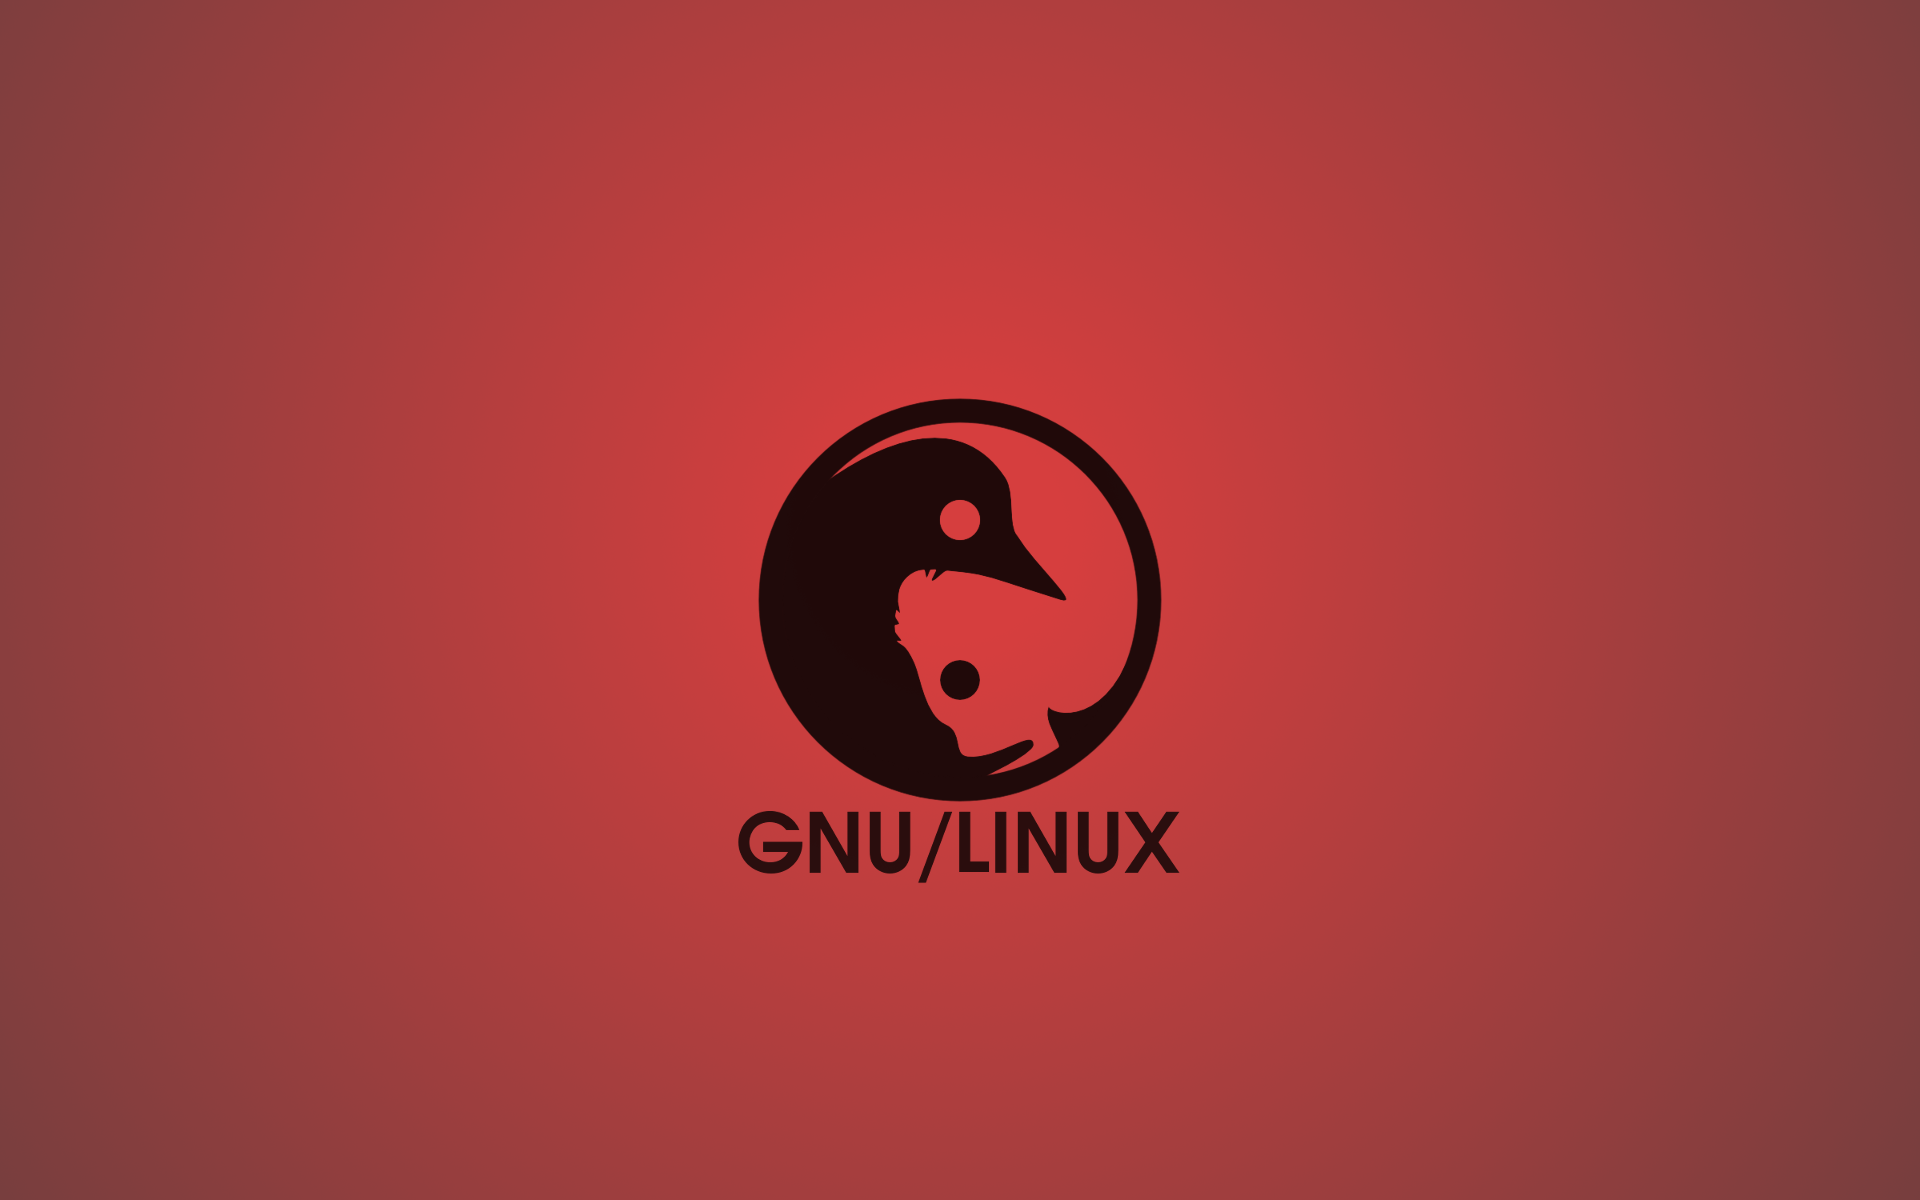 linux gnu red systems computer